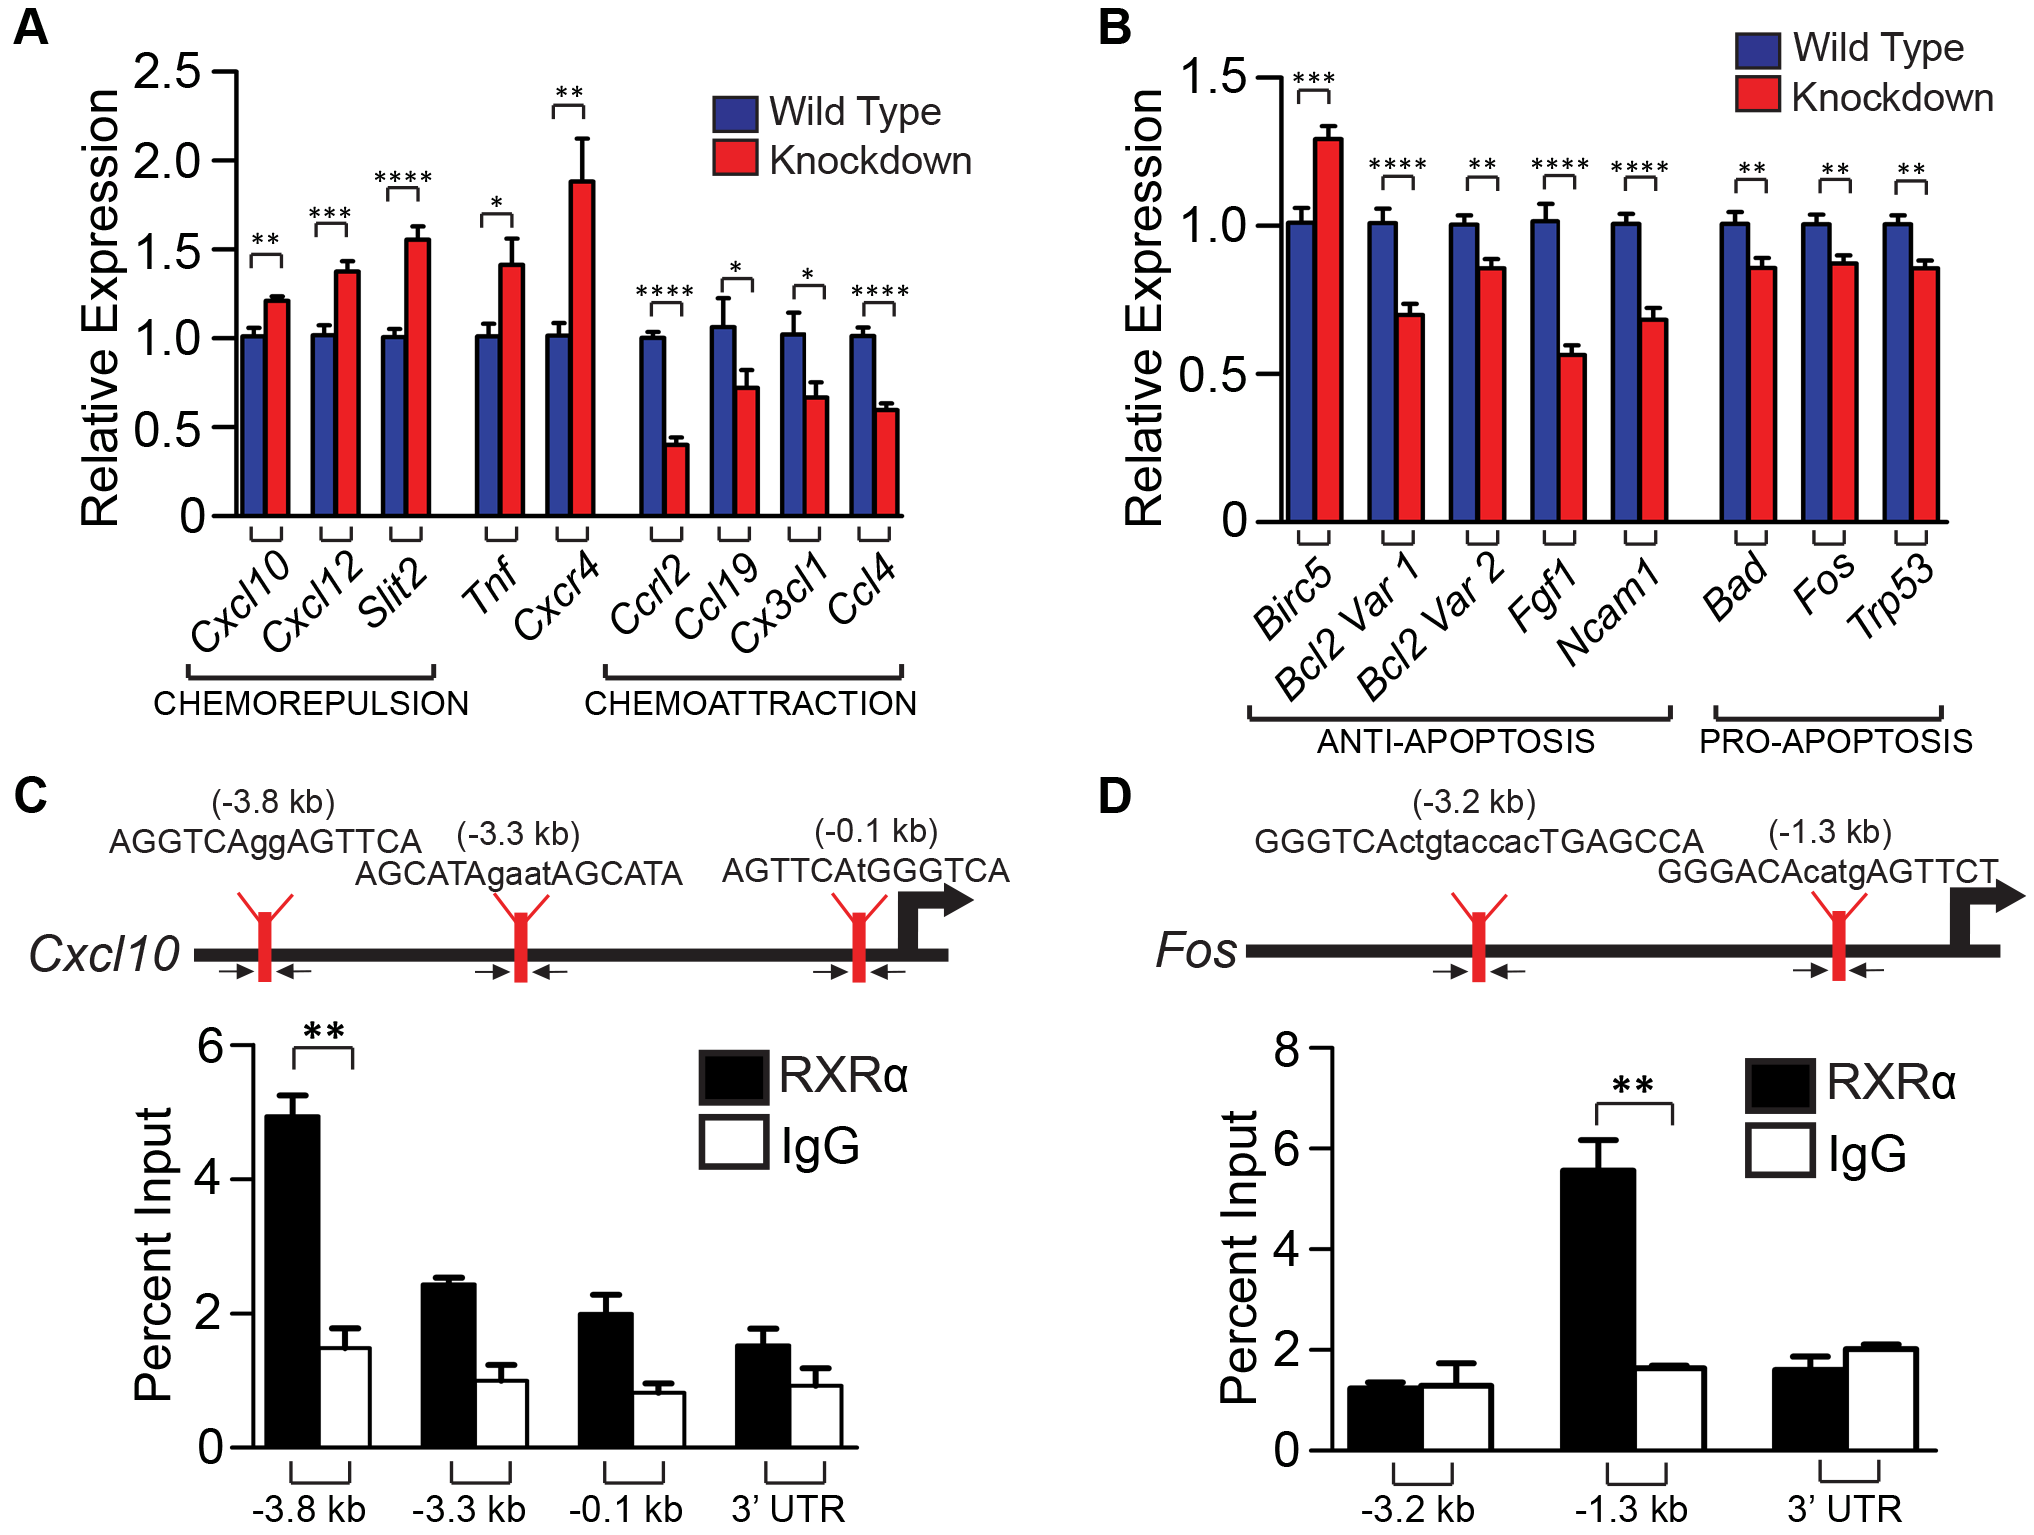 Ablation of RXR α and β in melanocytes results in altered expression of several chemokines post-UVR, as well as pro- and anti- apoptotic genes, some of which may be direct binding targets of RXRα.